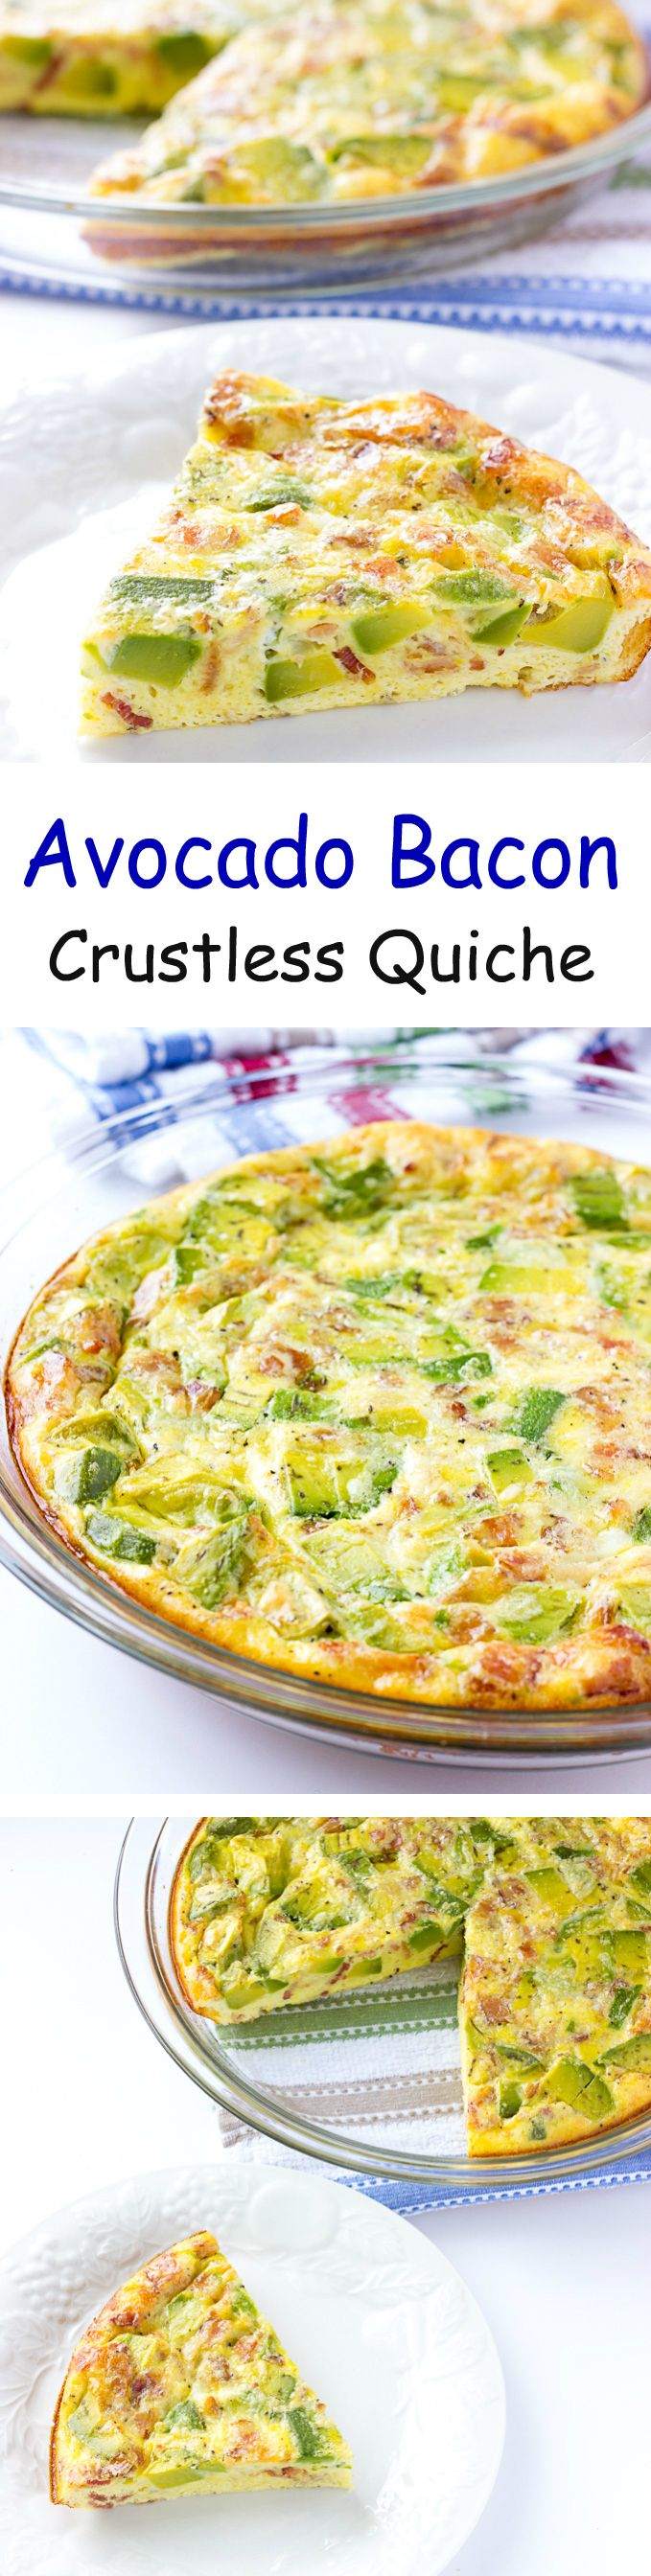 Avocado Bacon Crustless Quiche - Eggs, bacon, cheese, and avocado in one easy to prepare dish.  Perfect for #breakfast #brunch #lunch or #dinner